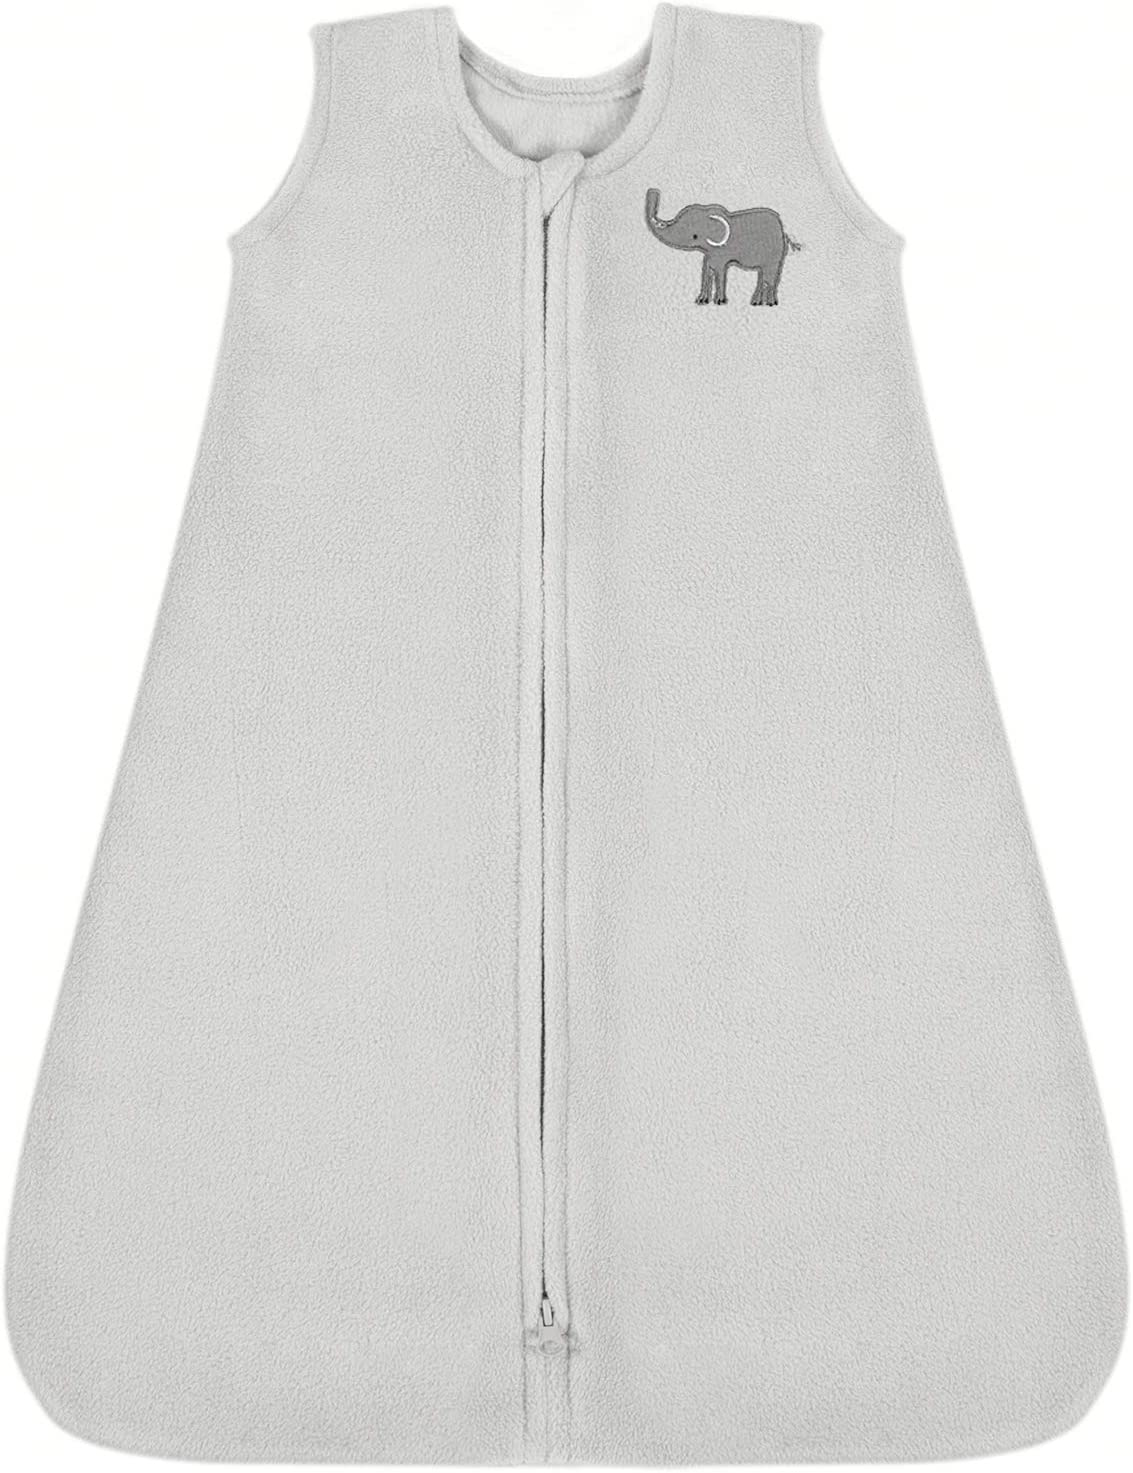 TILLYOU All Season Micro-Fleece Baby Sleep Bag and Sack with Inverted Zipper Medium M Fits Infants Babies Ages 6-12 Months Gray Elephant Sleeveless Warm Soft Wearable Blanket TOG 1